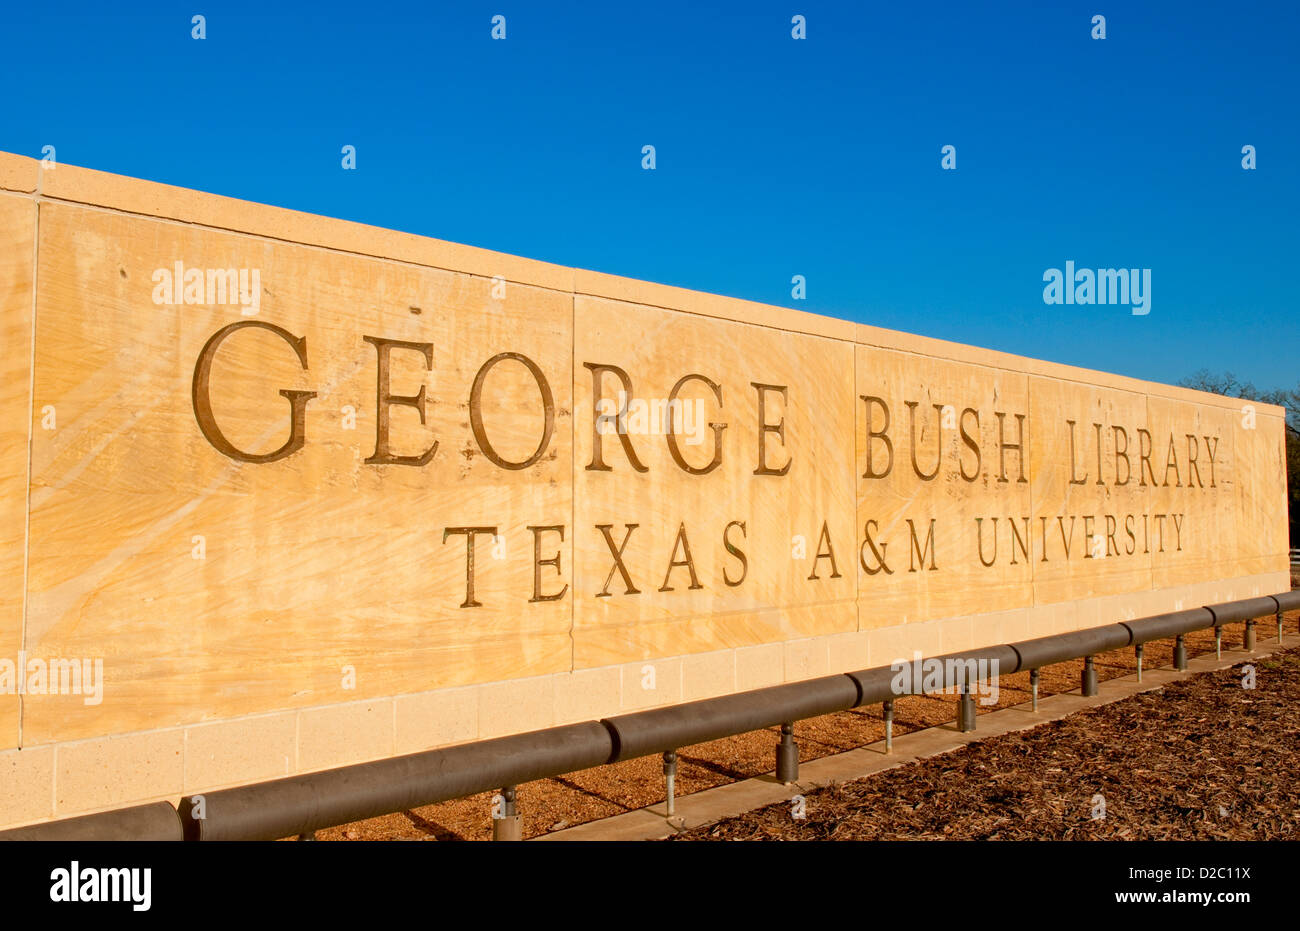 George H.W. Bush Library At Texas A&M University In College Station Texas - Stock Image